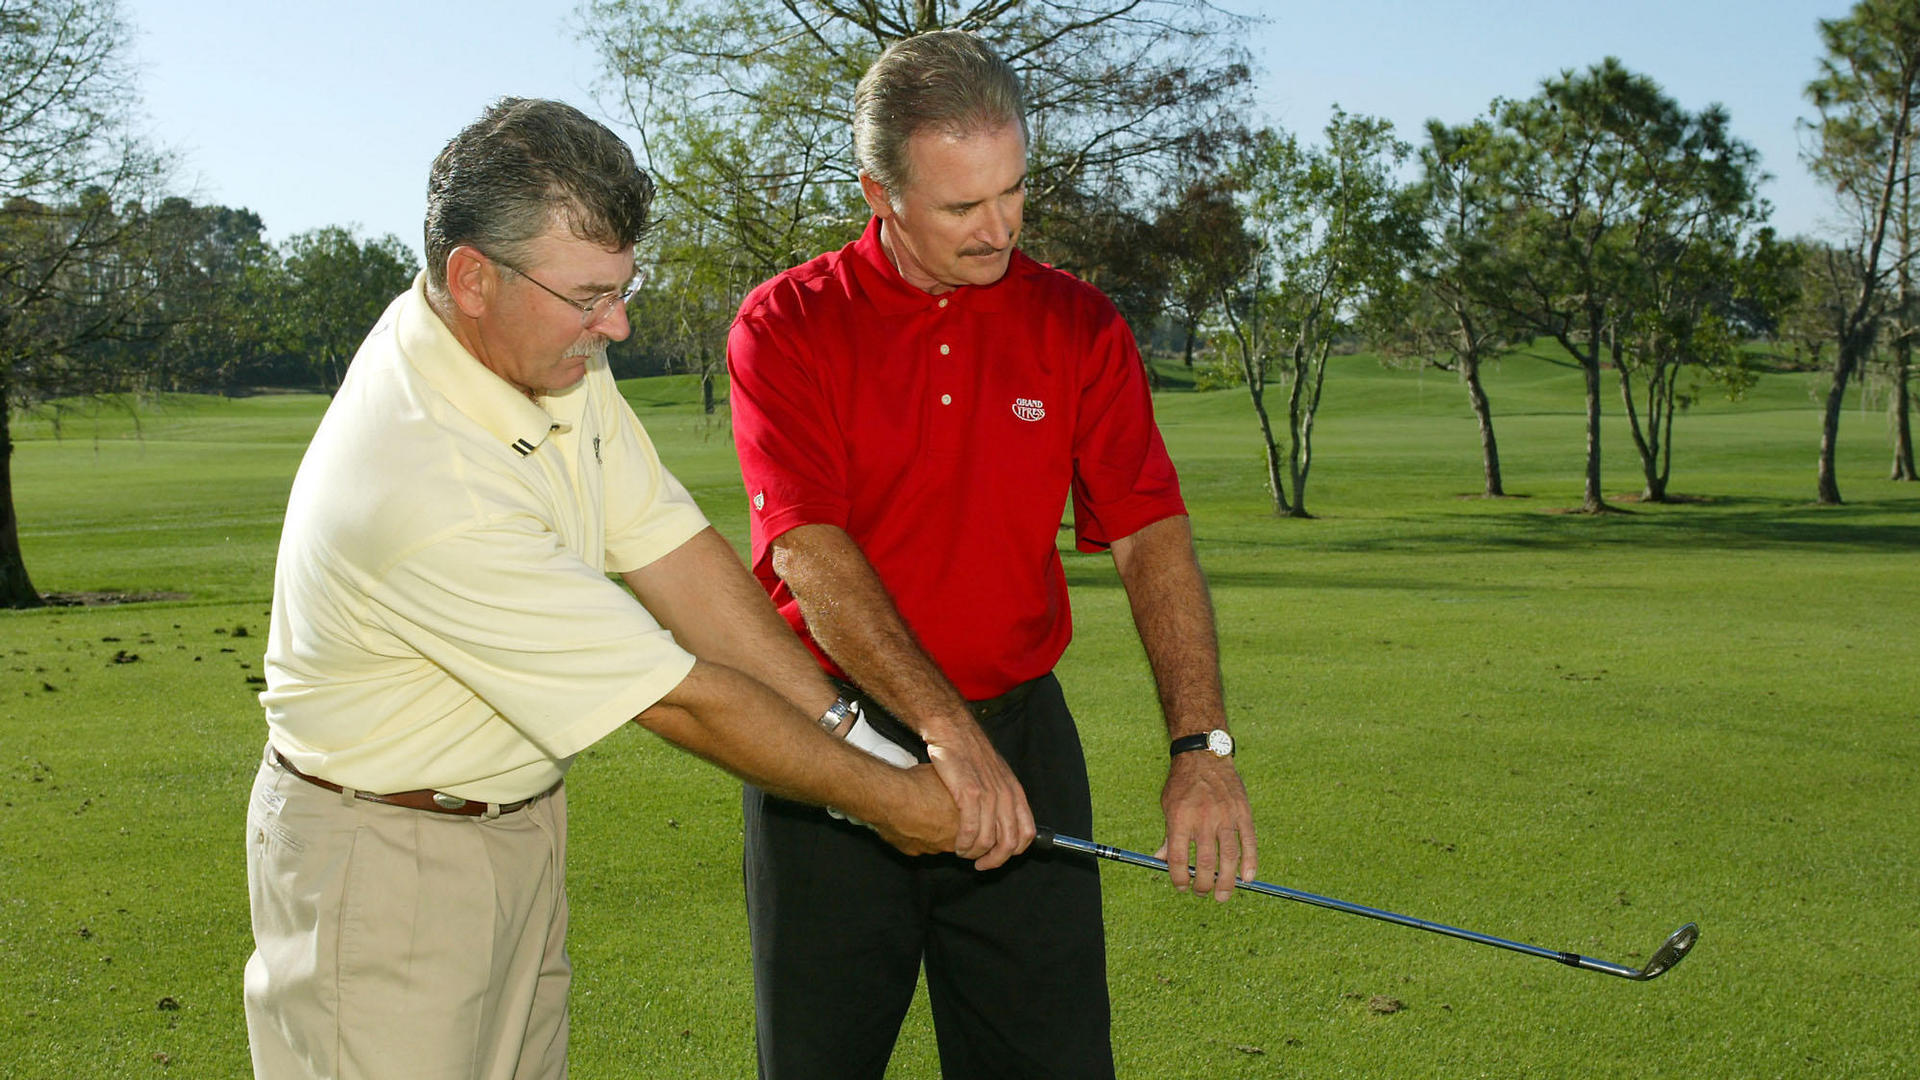 Personal Golf Lessons at Villas of Grand Cypress Orlando